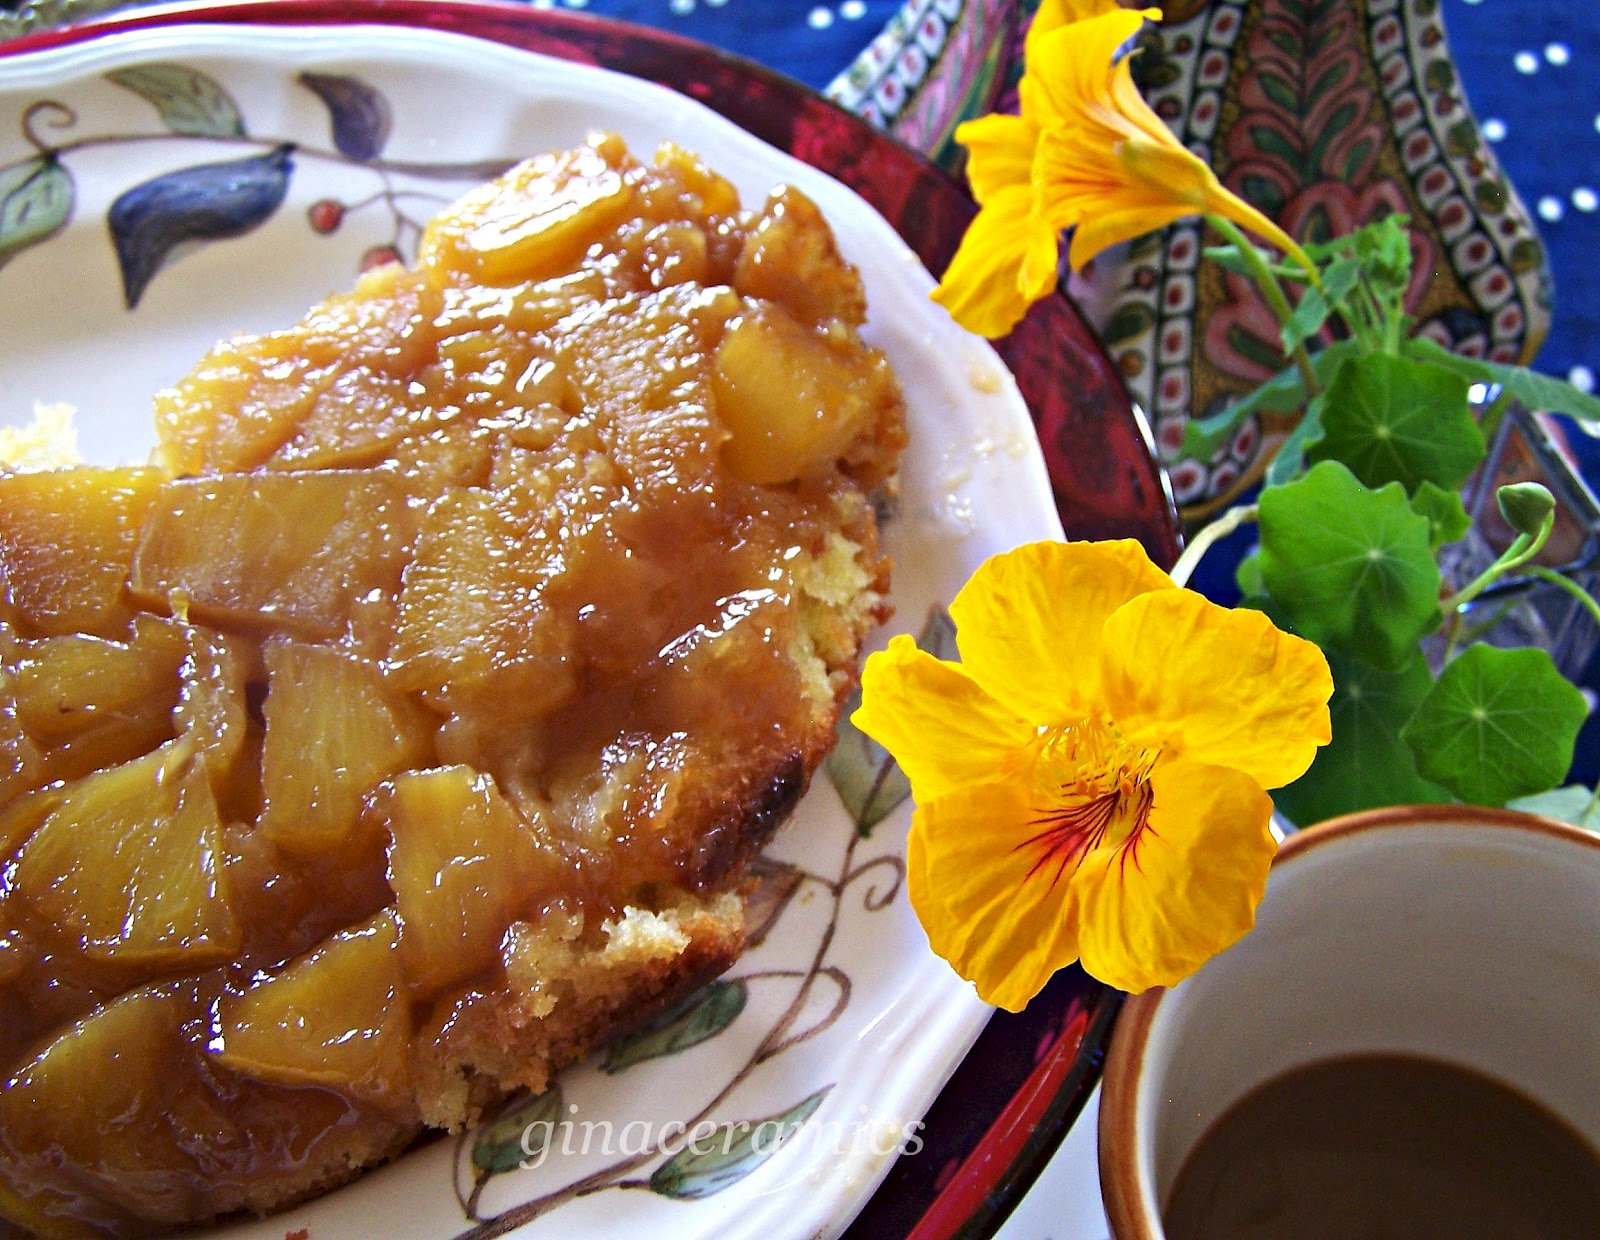 Old Fashioned Pineapple Upside-Down Cake Recipe 39